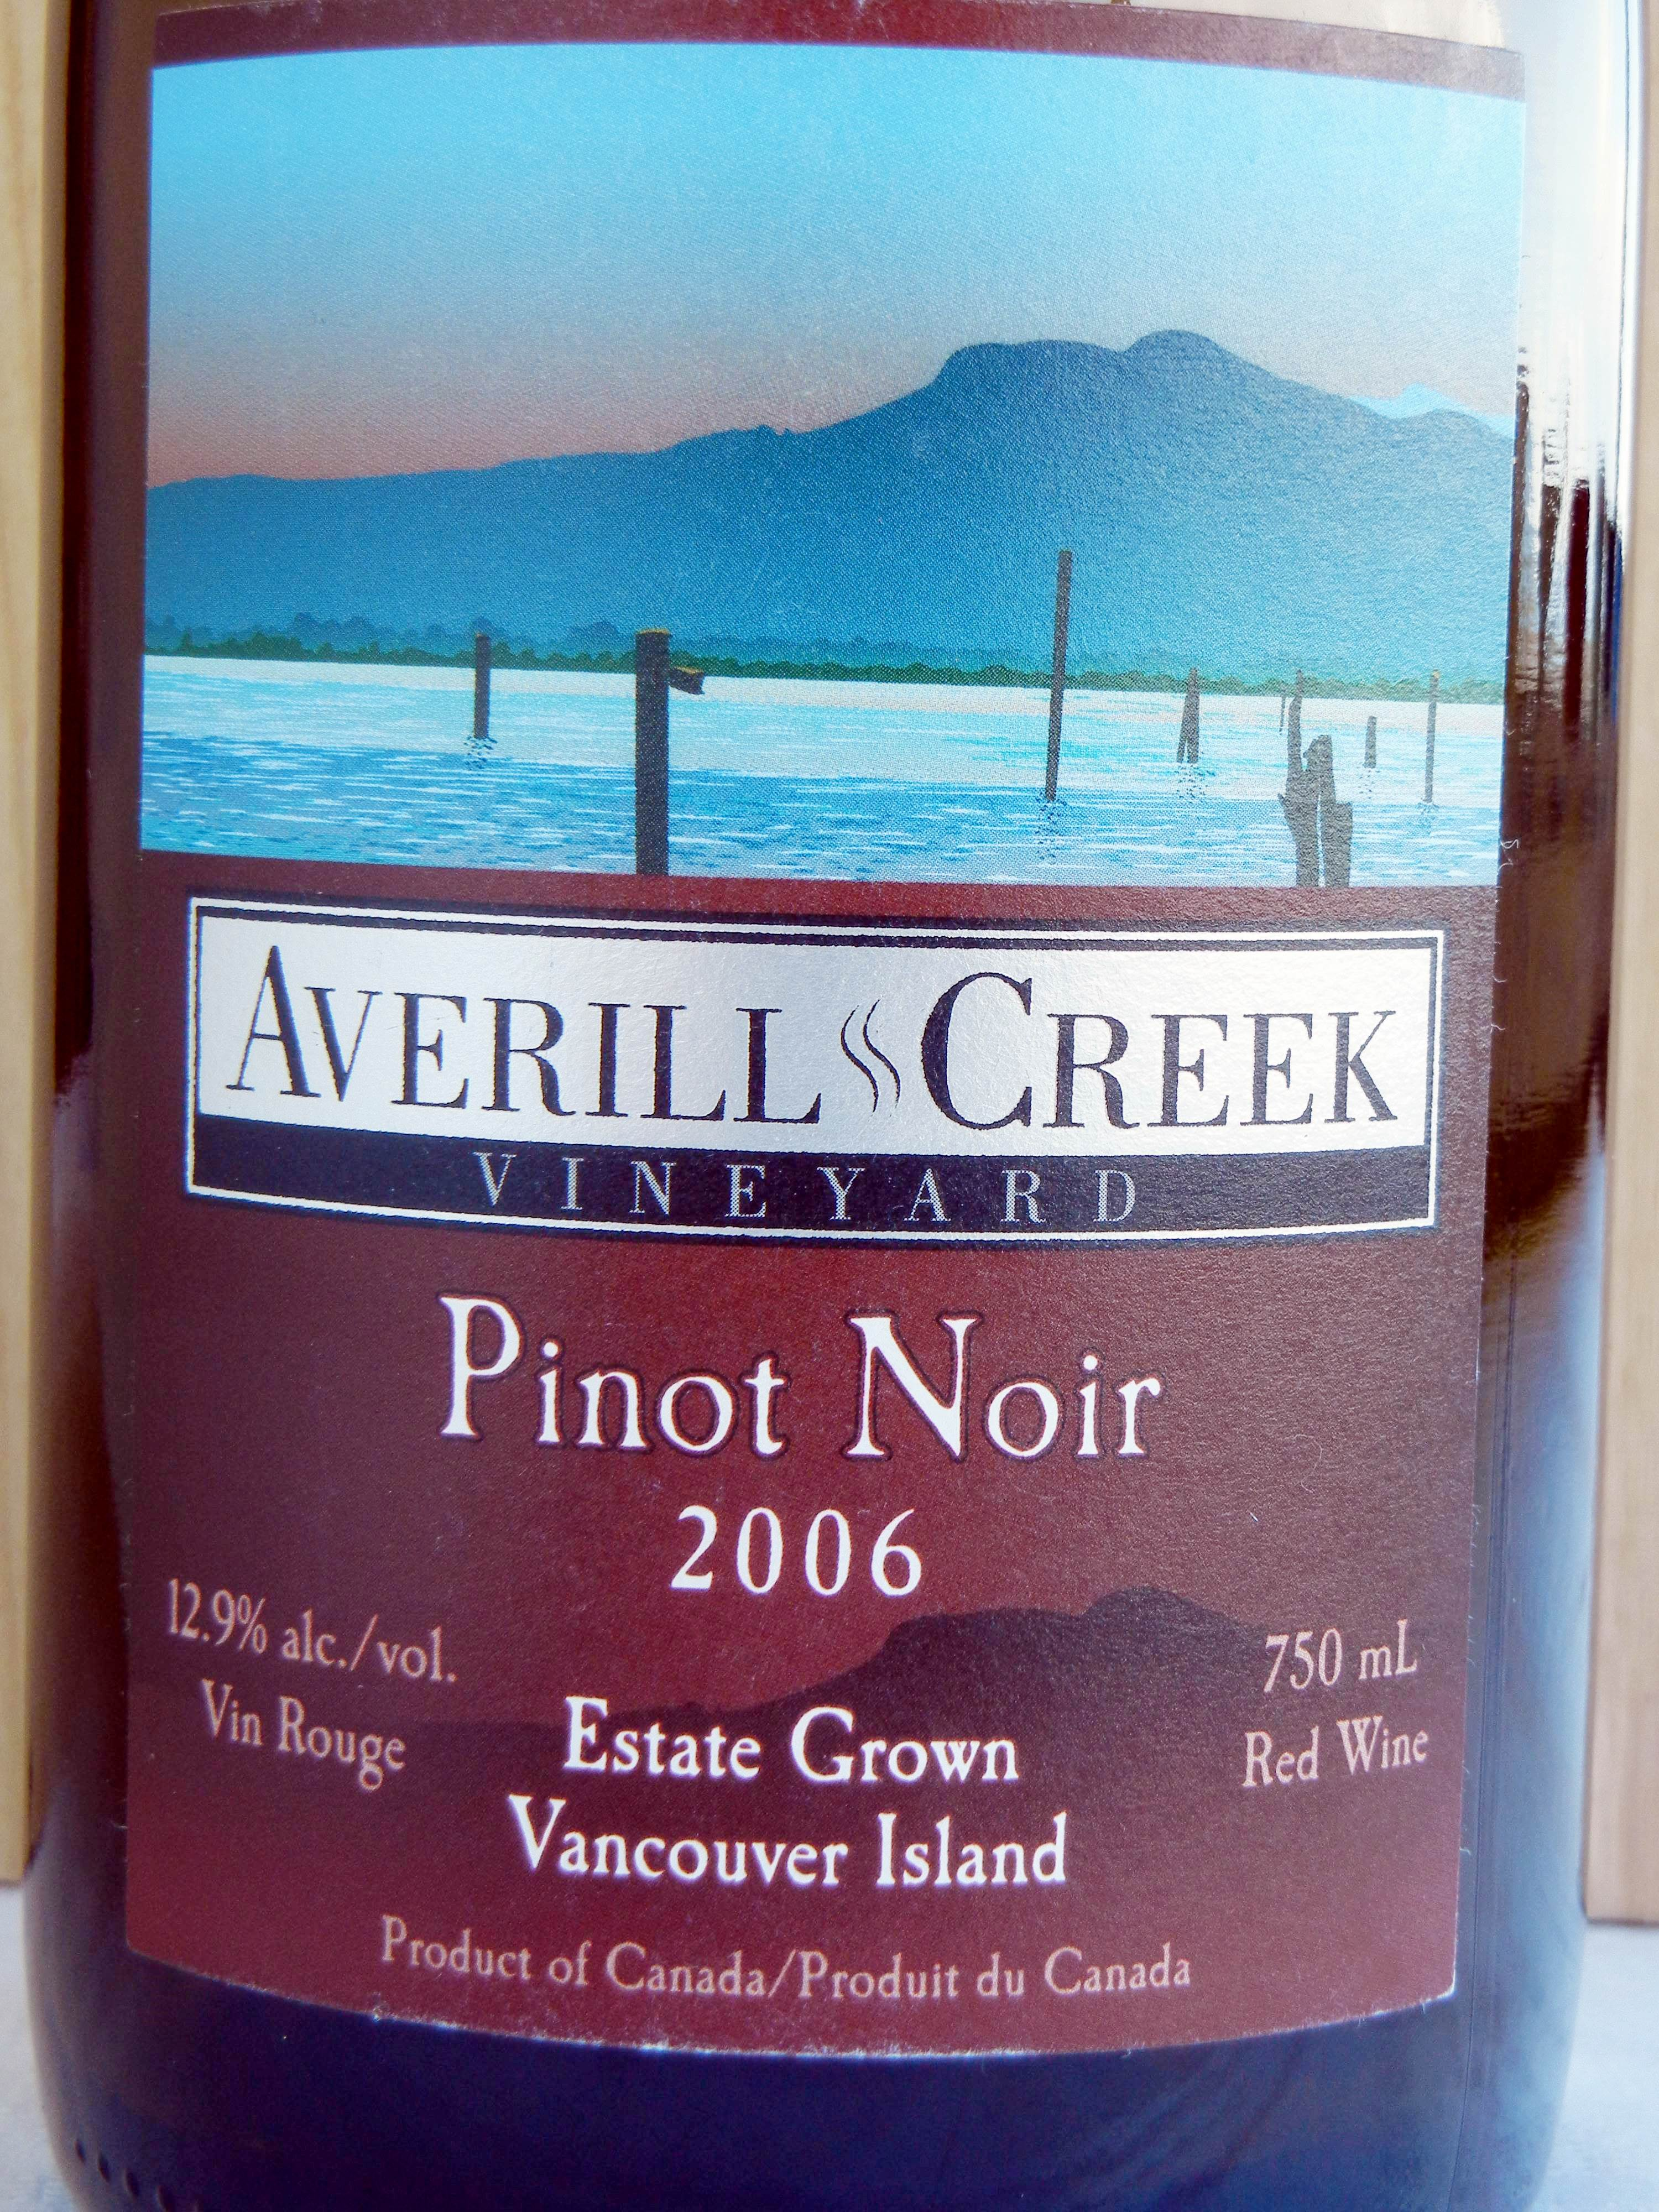 Averill Creek Pinot Noir 2006 Label - BC Pinot Noir Tasting Review 12